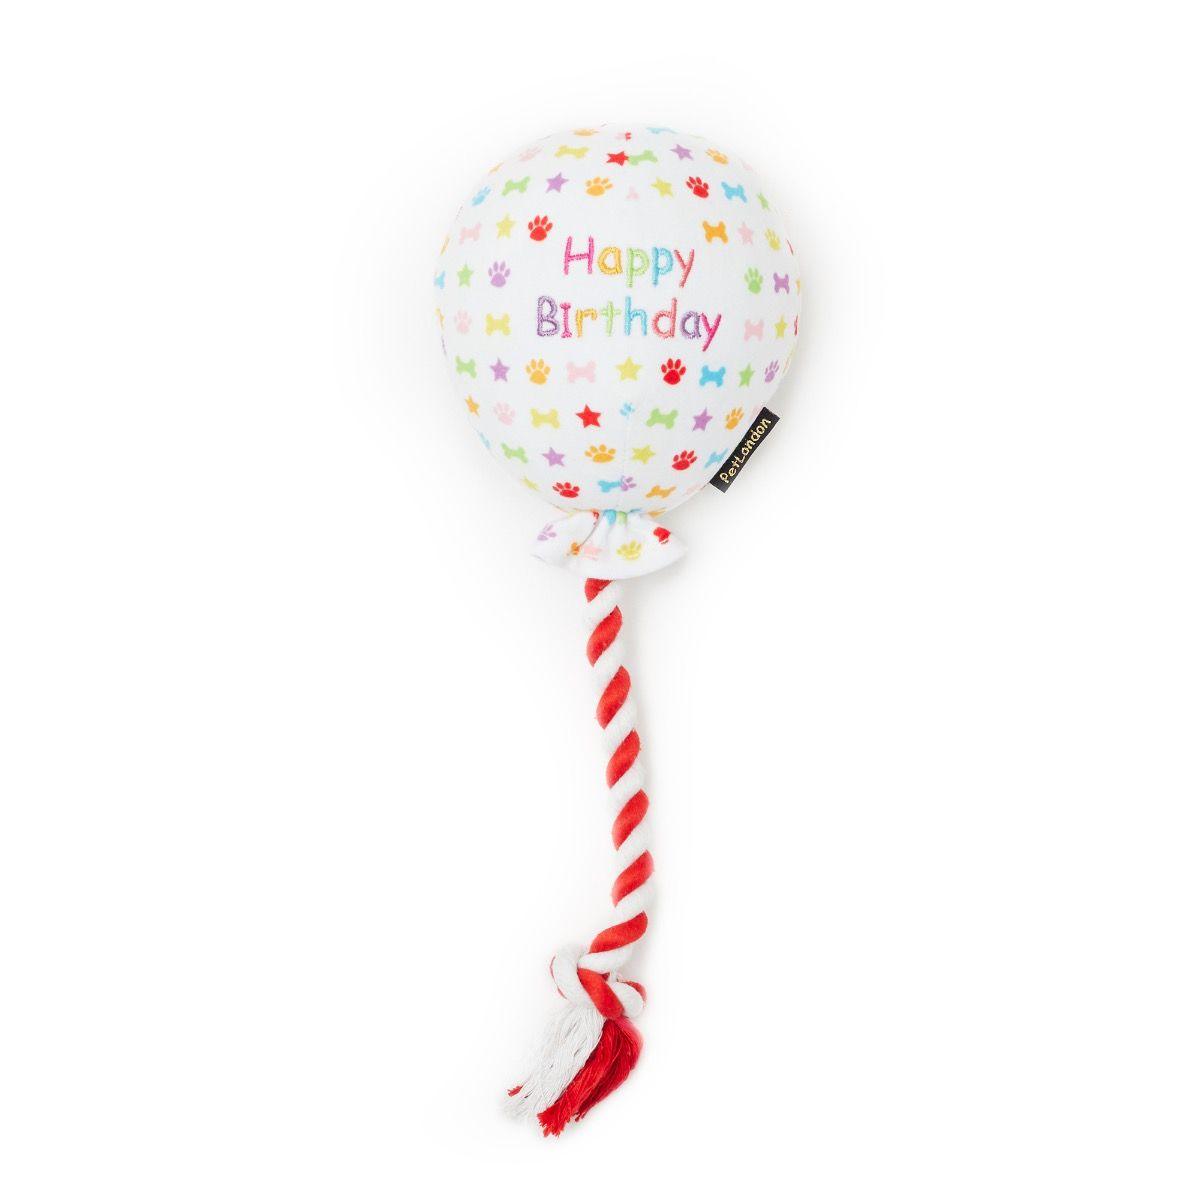 Birthday Balloon toy